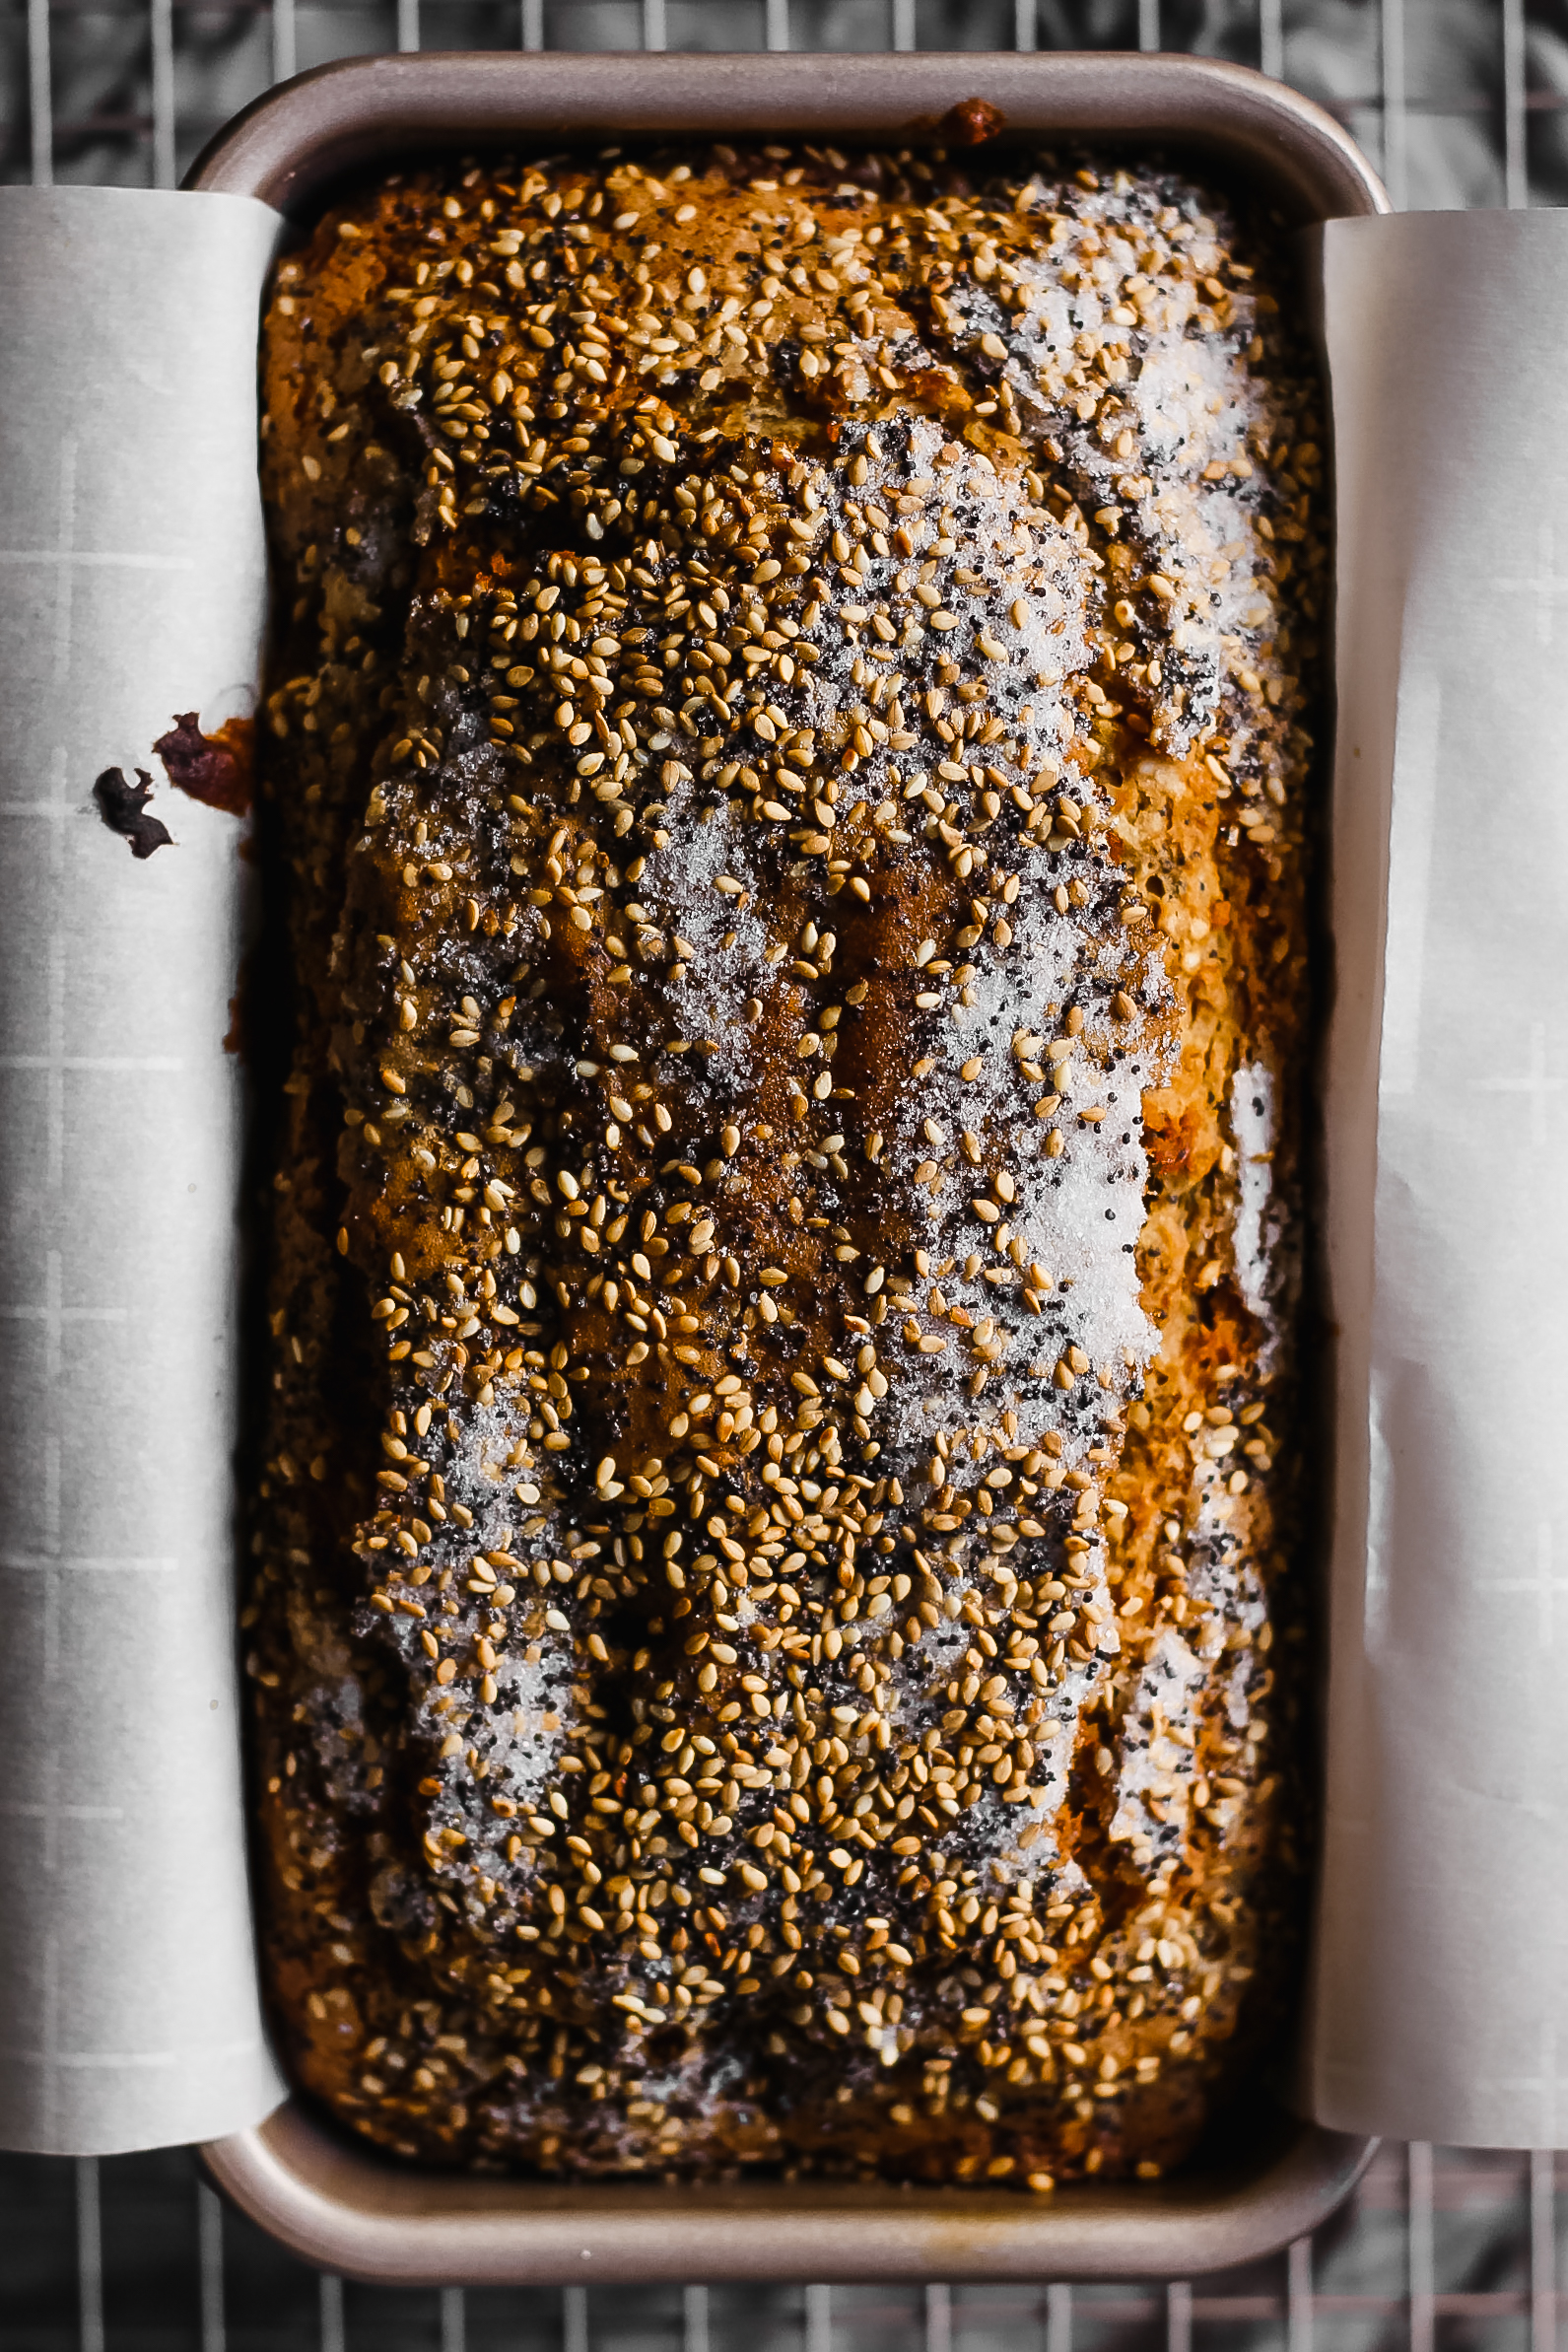 Seeded whole wheat banana bread butter loves company from lindsay maitland hunts new cookbook healthyish this seeded whole wheat banana bread is the healthy banana bread recipe you will keep going back to forumfinder Images